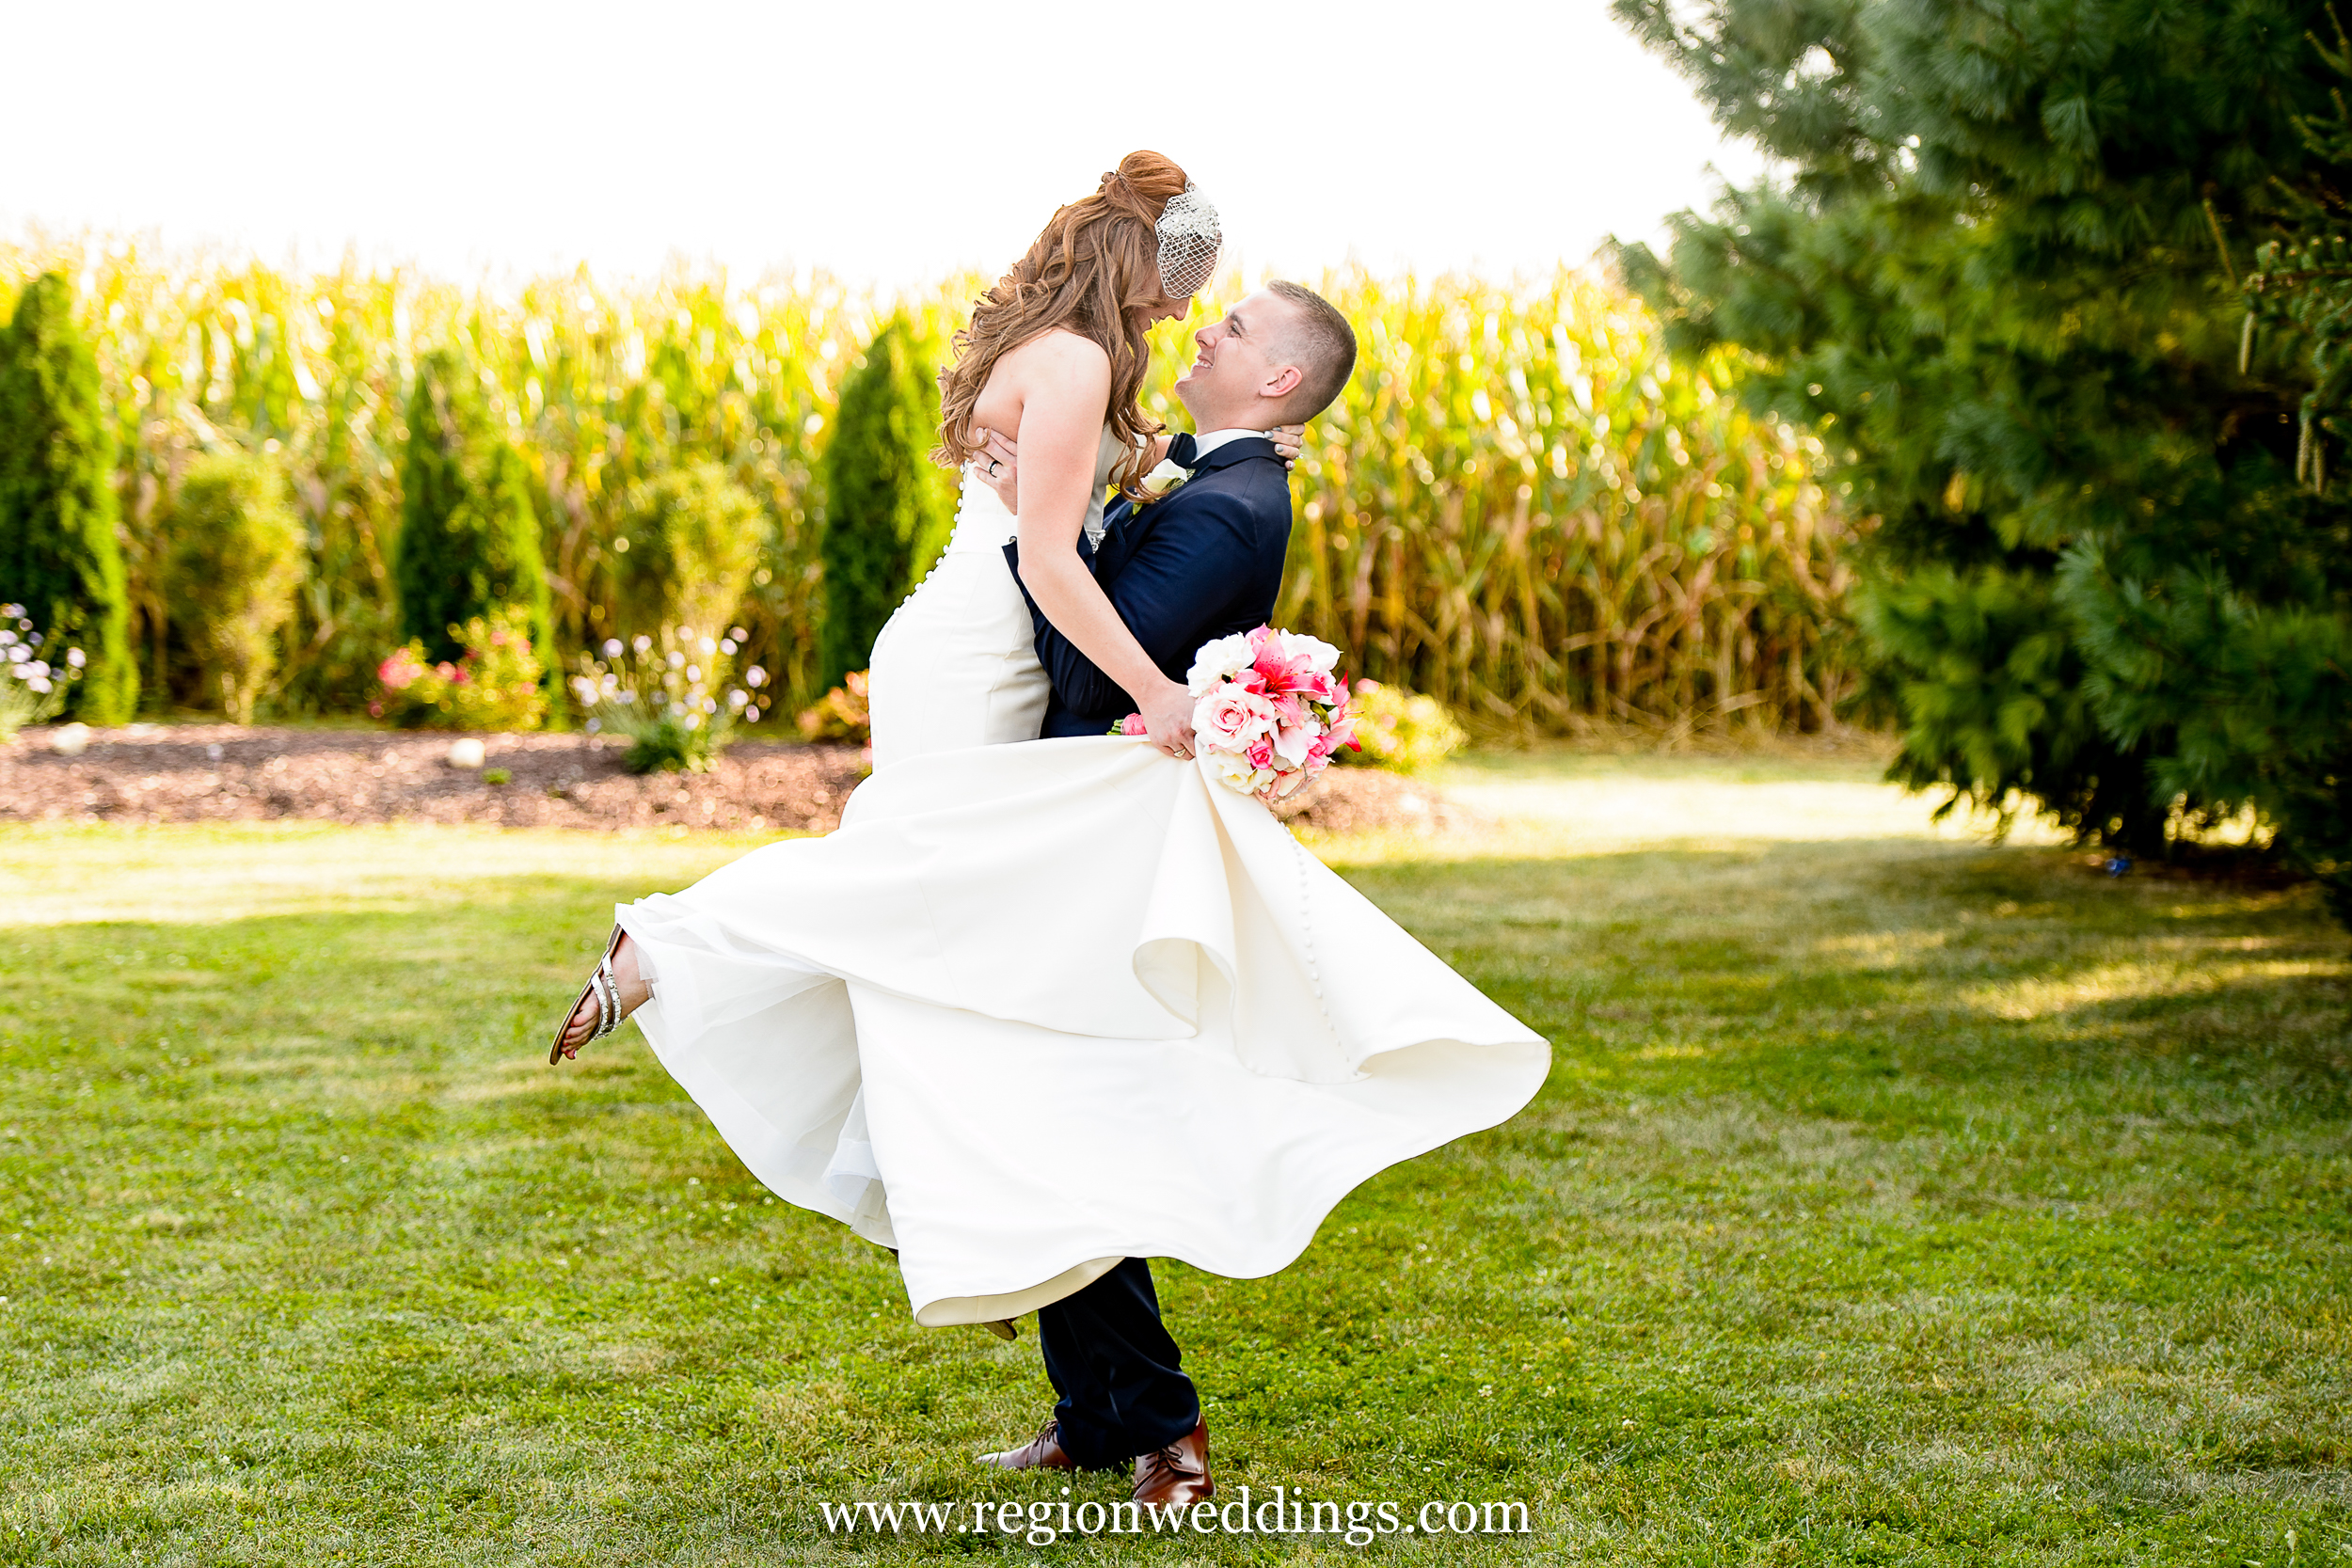 The groom spins his bride near the cornfields of Indiana.